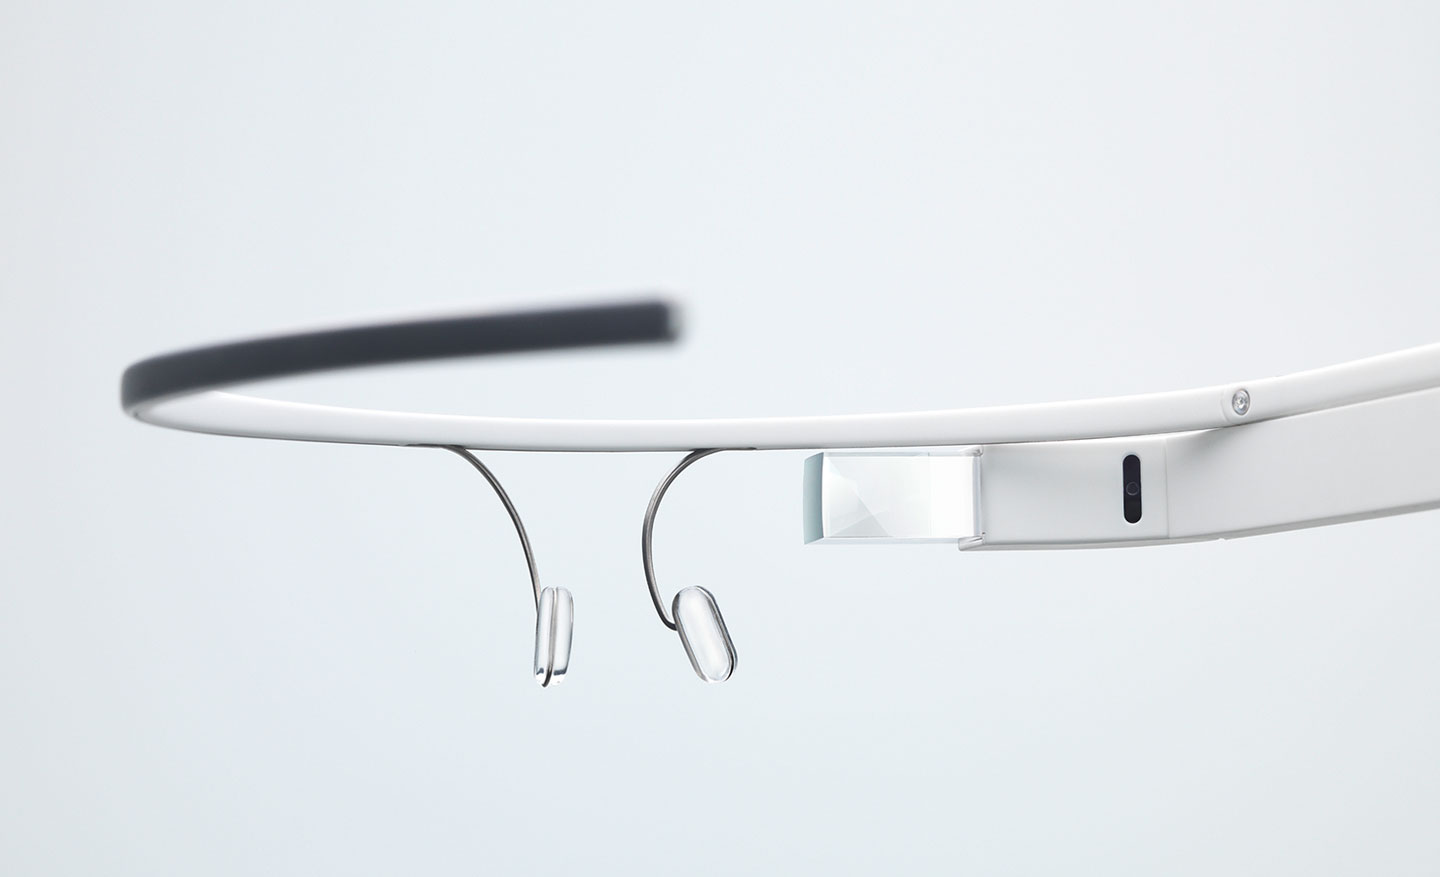 Google Glass Discrimation? Technophobia? Or An Issue of Privacy?